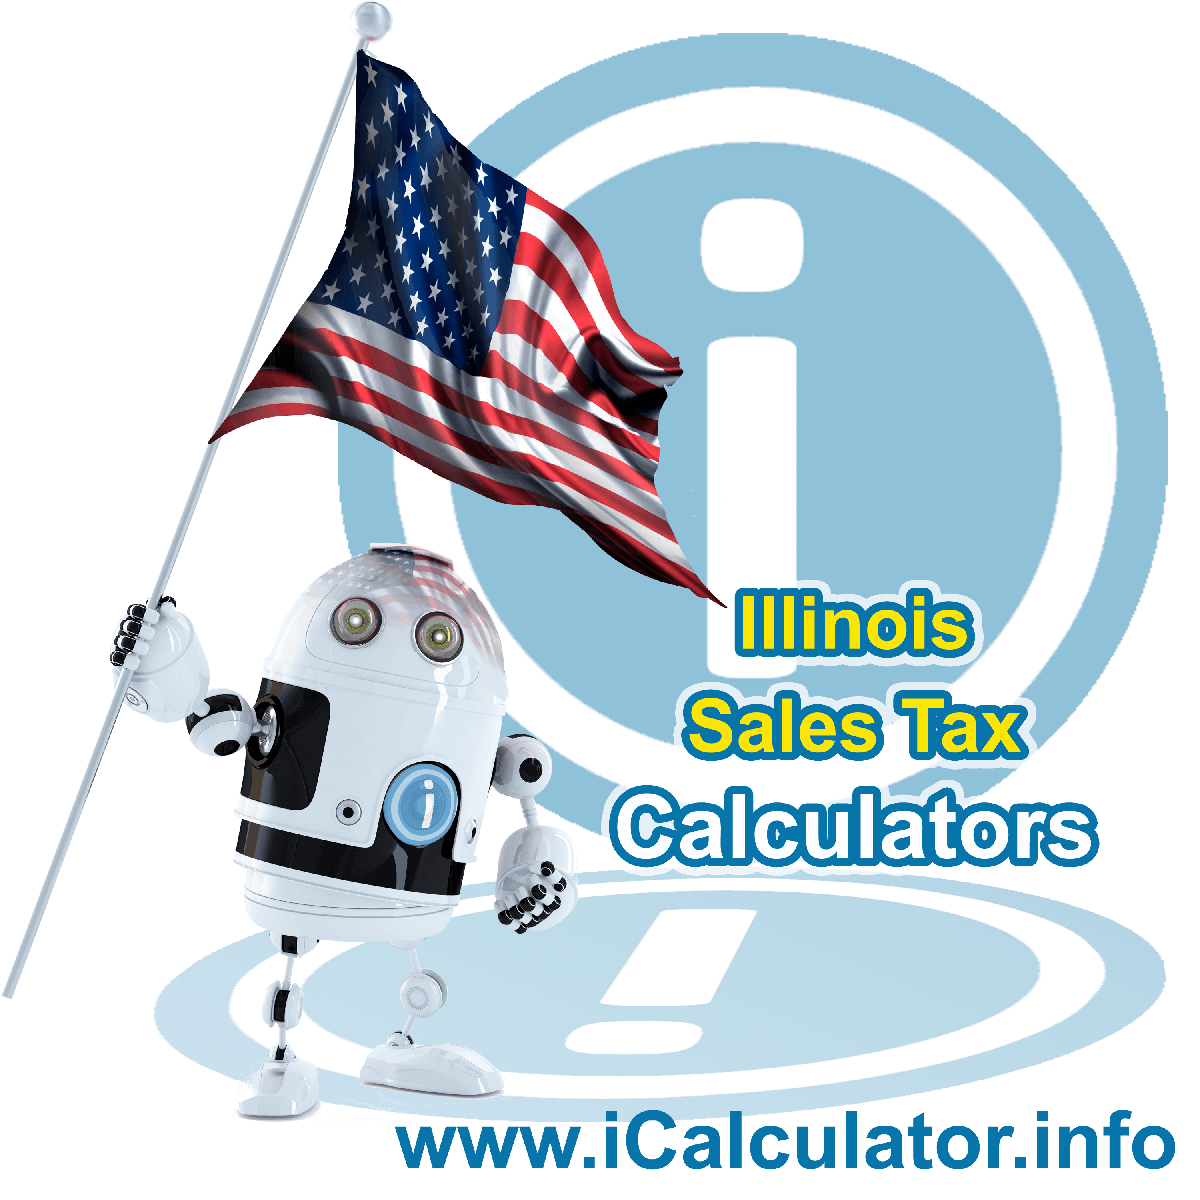 Roxana Sales Rates: This image illustrates a calculator robot calculating Roxana sales tax manually using the Roxana Sales Tax Formula. You can use this information to calculate Roxana Sales Tax manually or use the Roxana Sales Tax Calculator to calculate sales tax online.